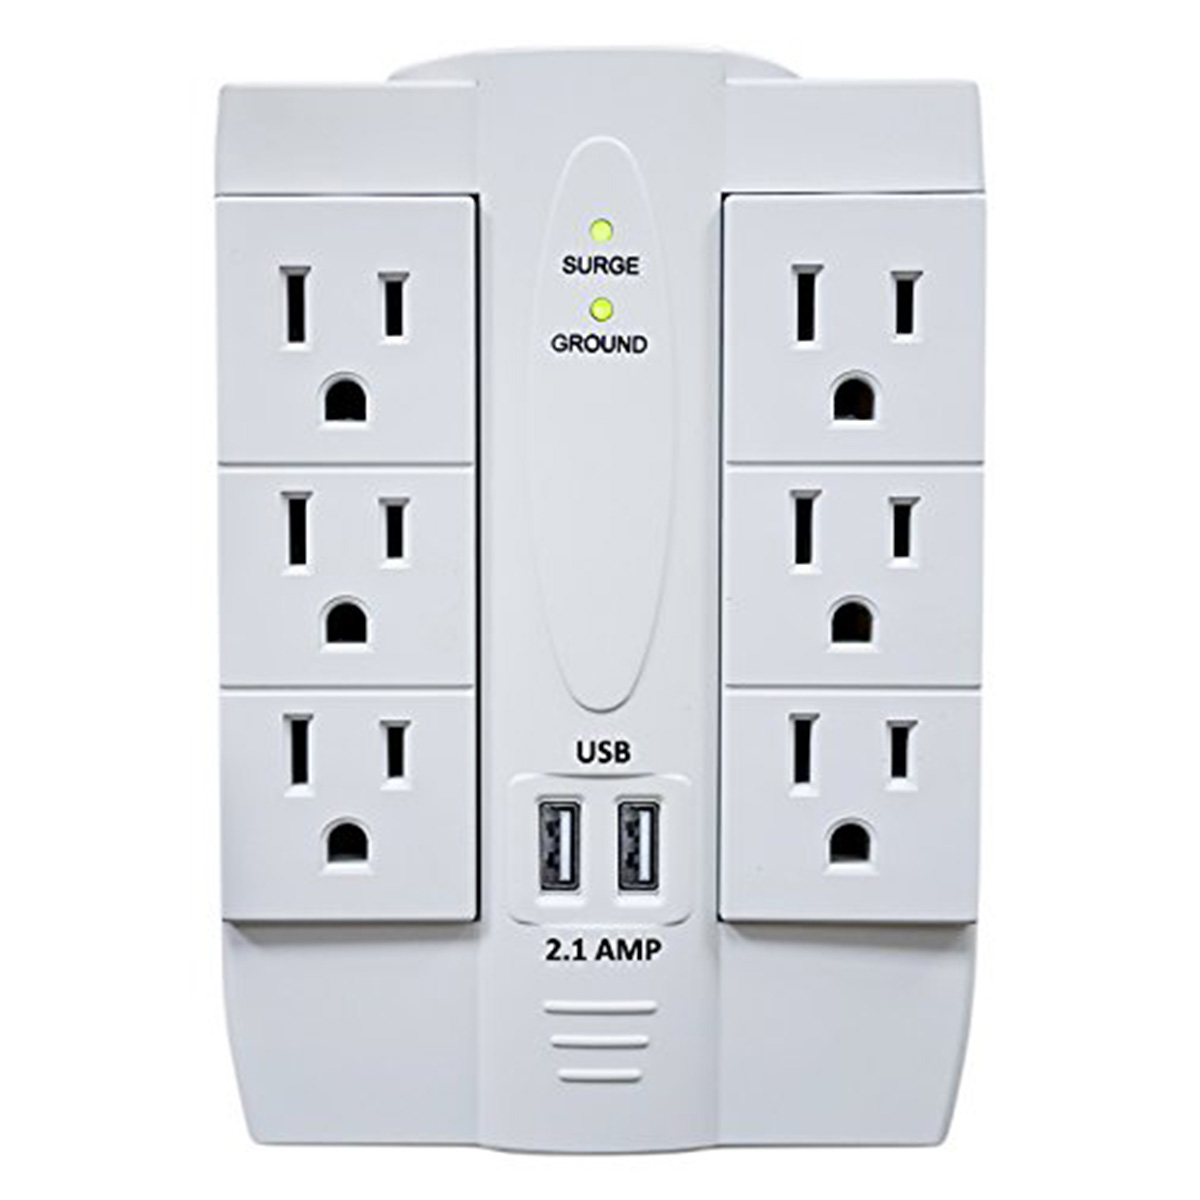 Wall Socket Covers 6 Ac Outlet Swivel Surge Protector Wall Tap With 2 Usb 2.1A